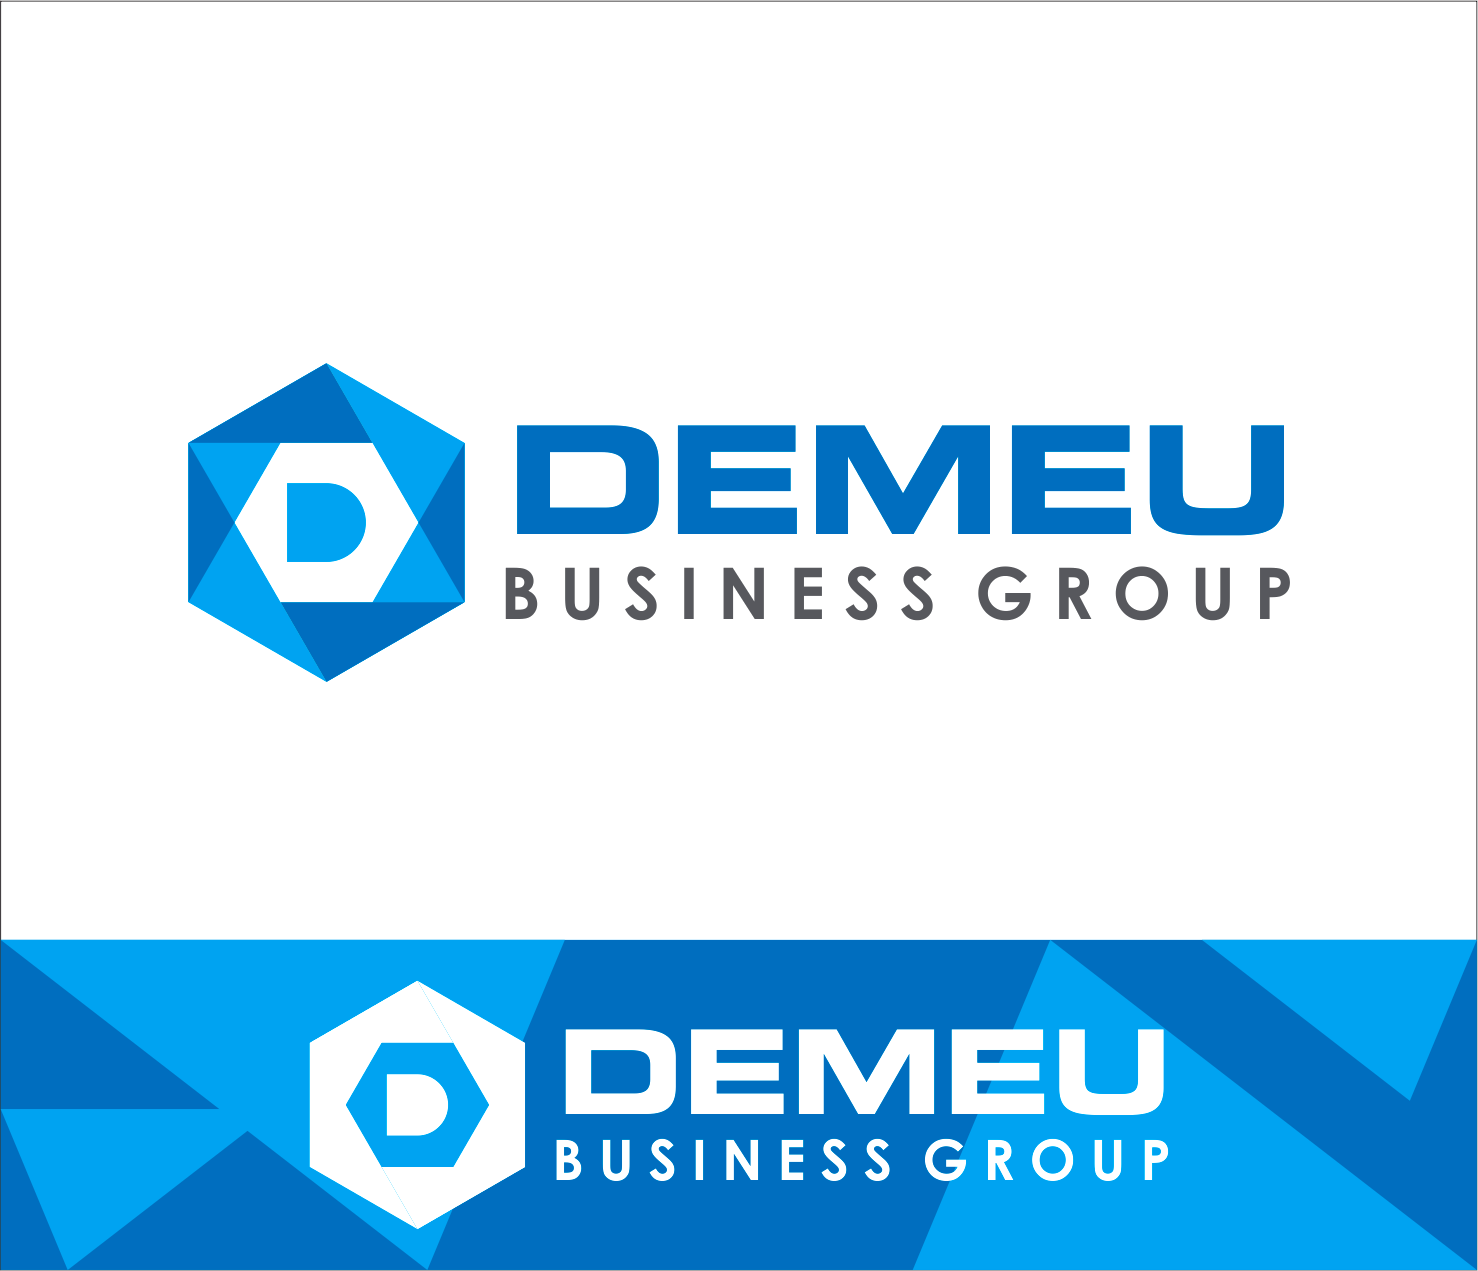 Logo Design by Armada Jamaluddin - Entry No. 32 in the Logo Design Contest Captivating Logo Design for DEMEU Business Group.